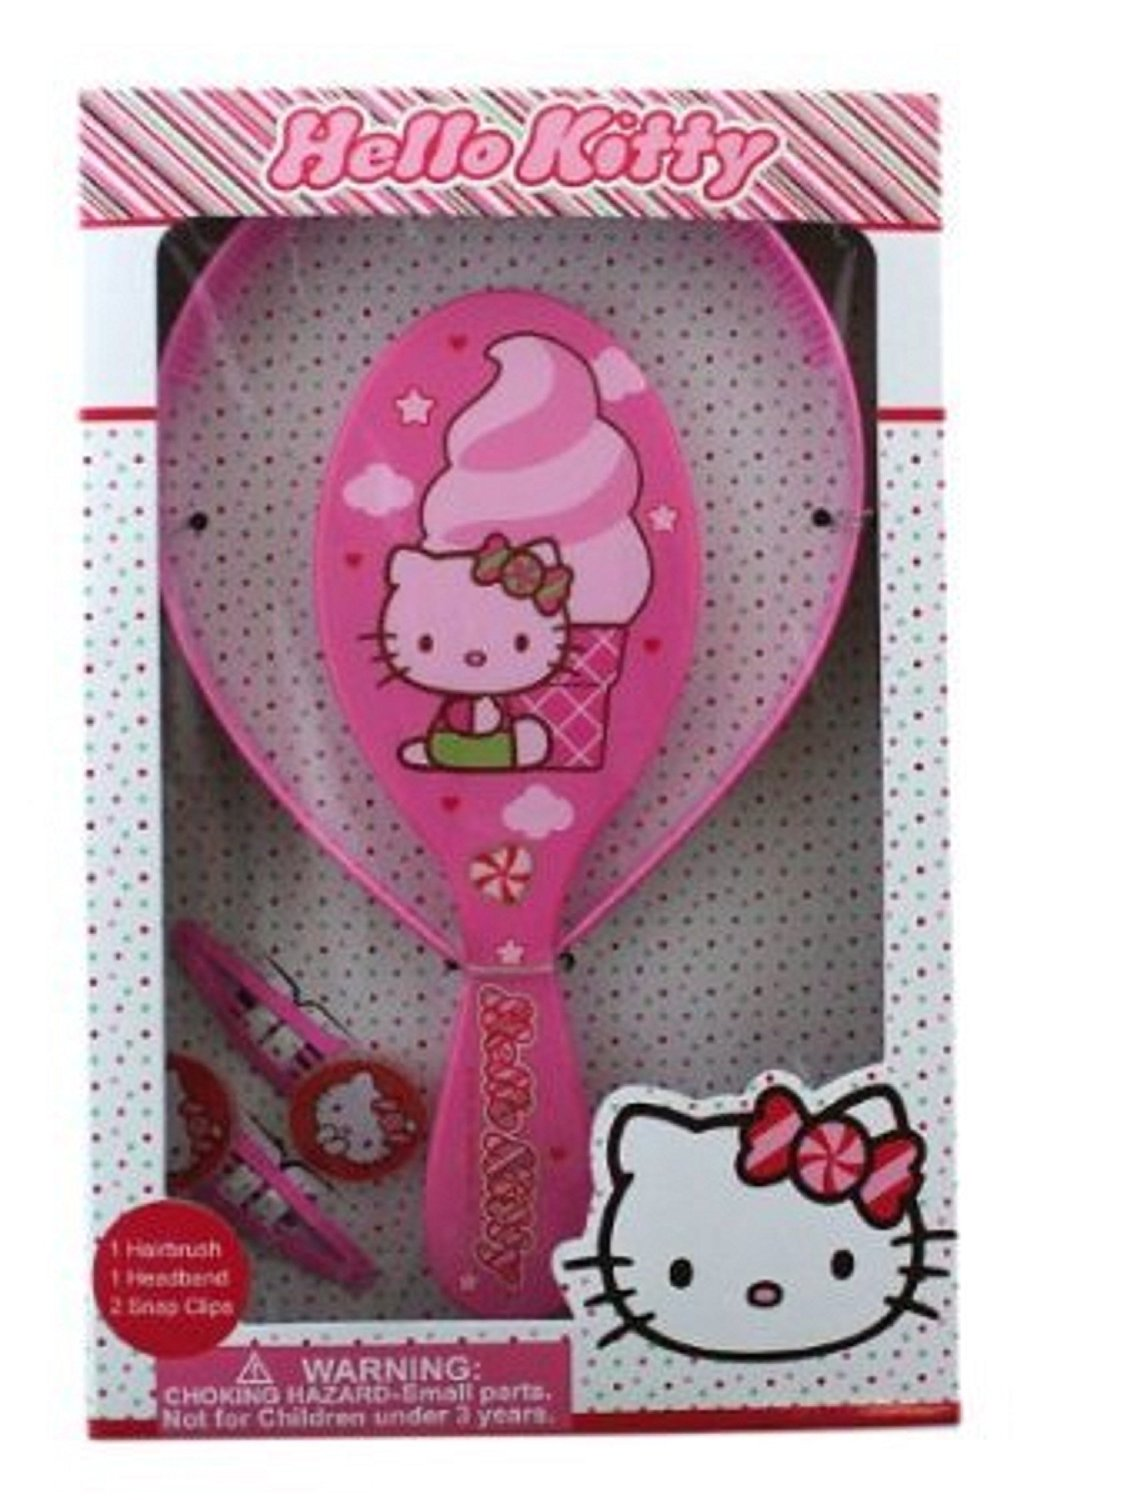 7a0a3516a Get Quotations · Granny's (c) Hello Kitty Pretend Play Hair Brush,Headband,and  two snap